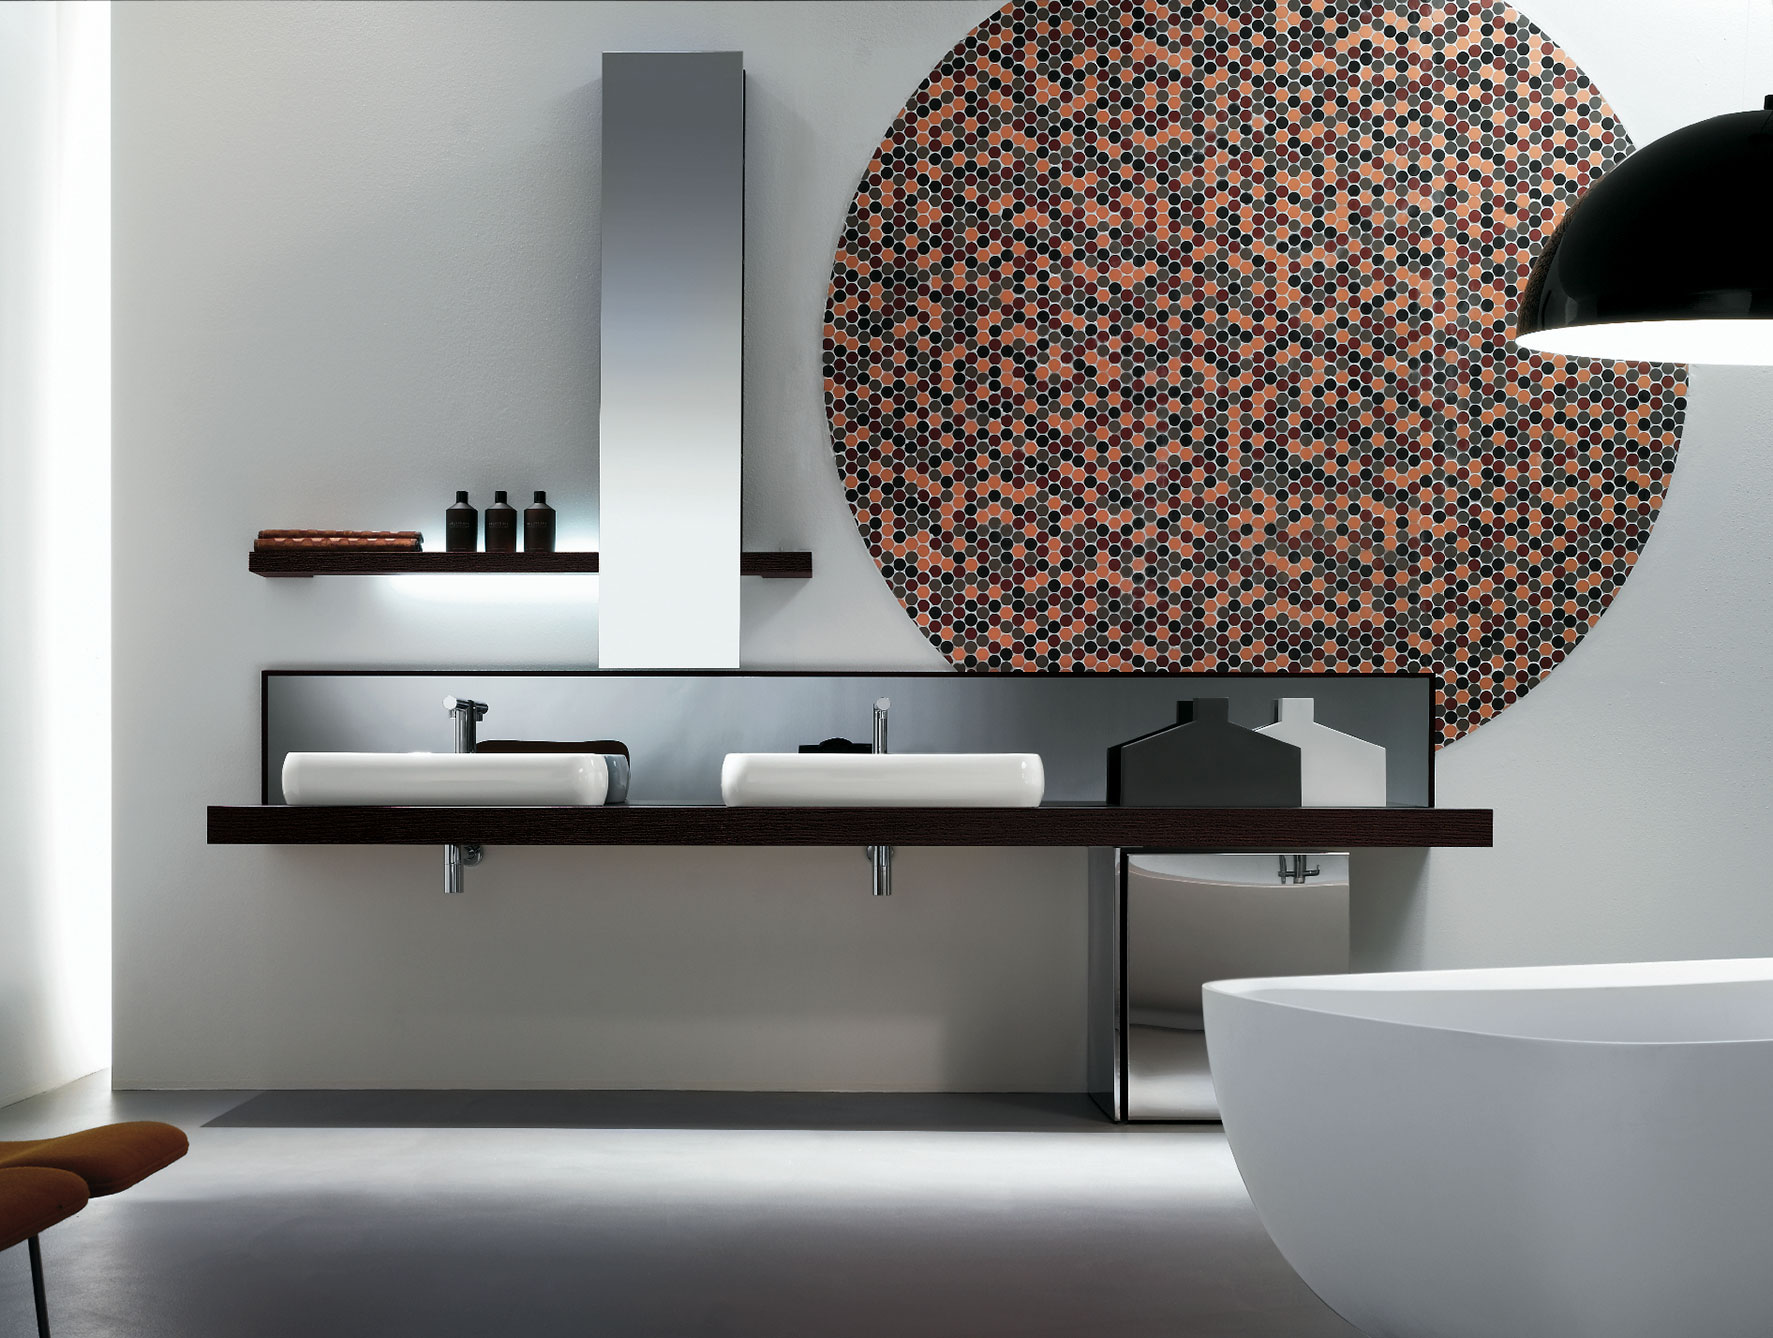 Custom High End Bathroom Vanities modern vanities for bathroom, modern bathroom vanity, modern